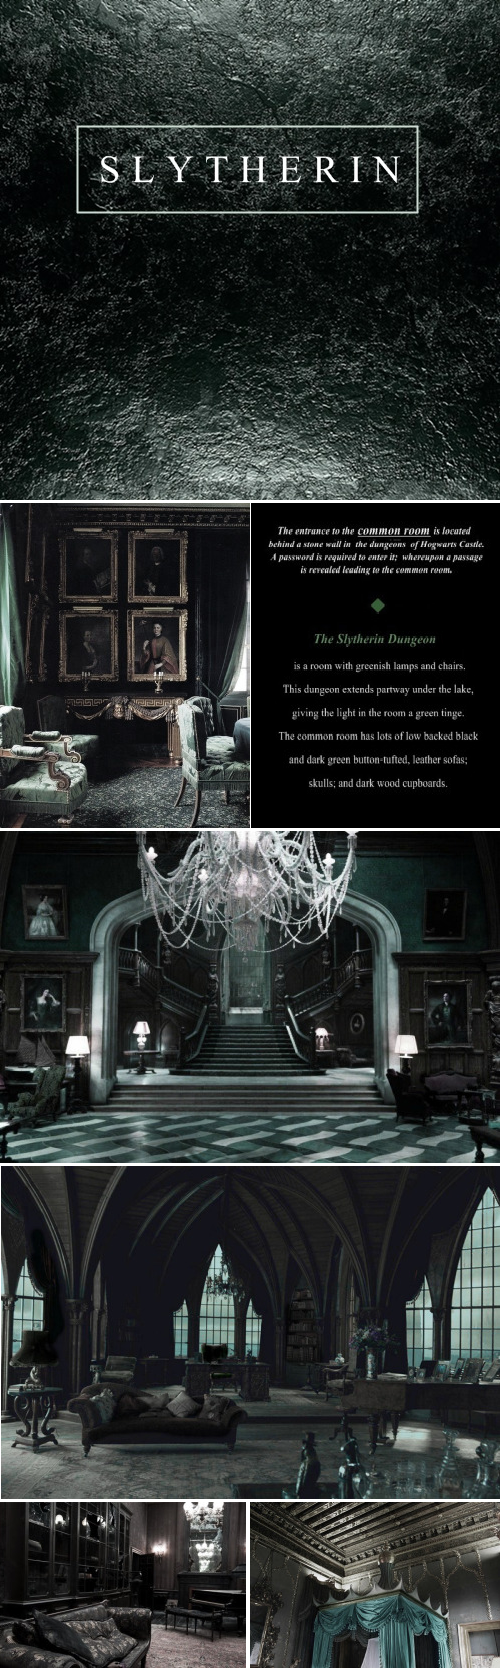 Hogwart's Houses (HP) compare and contrast research paper-- Help?!?